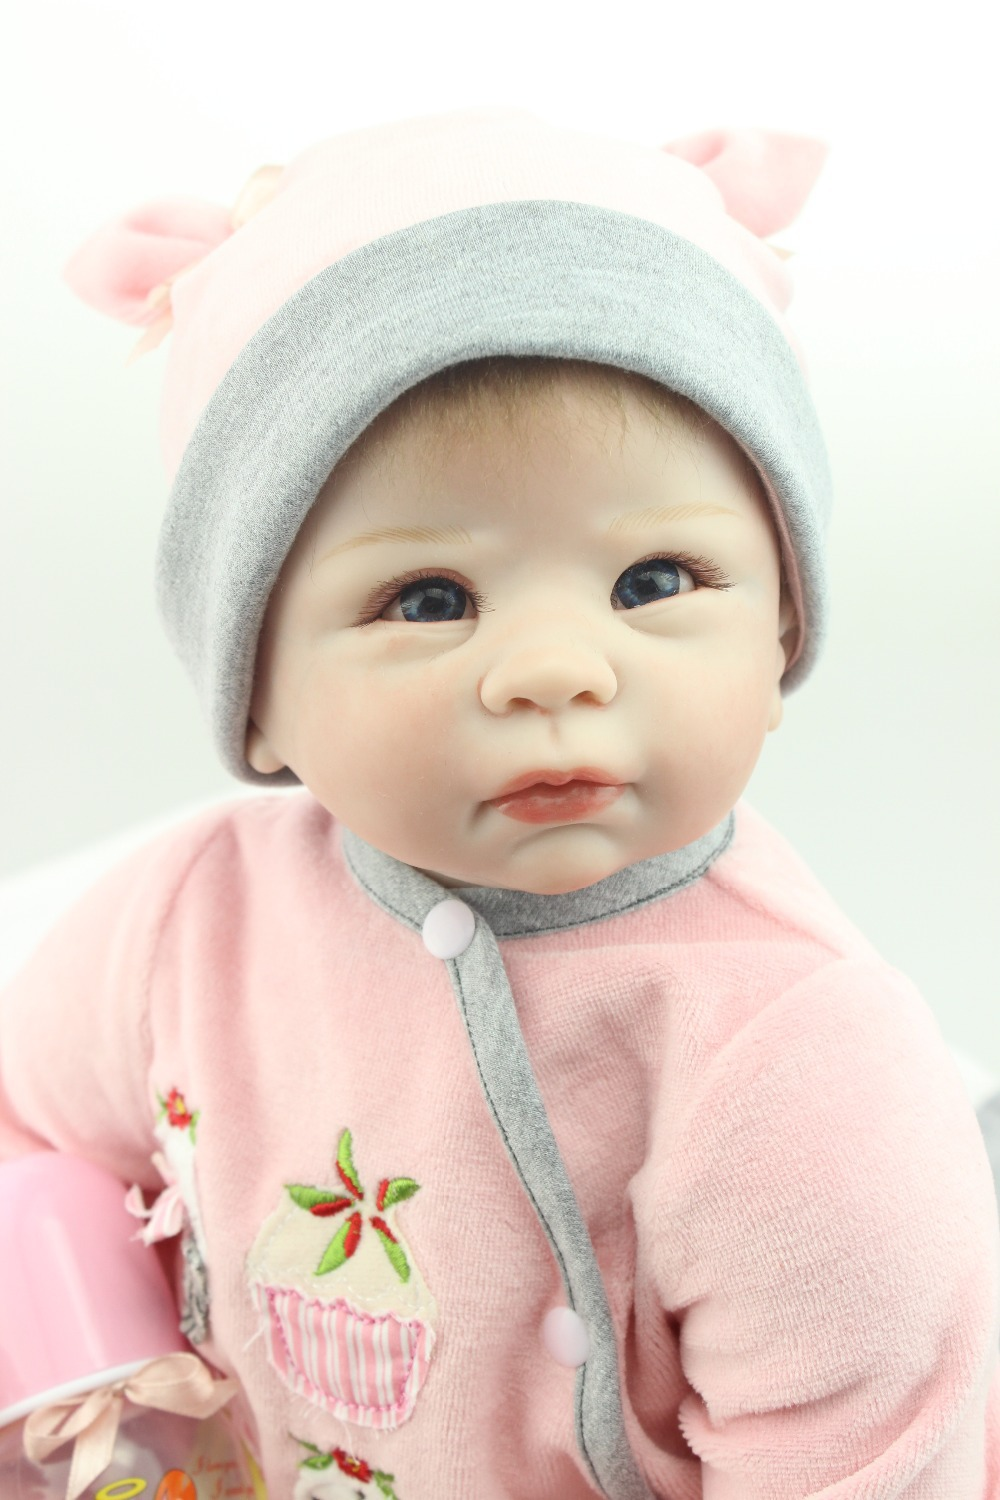 Realistic High Quality Simulation Babydoll rooted mohair Doll Silicone Vinyl Toys Soft Cotton Body Children Birthday Present newborn simulation babydoll silicone vinyl doll educational enlightenment baby toys girls present